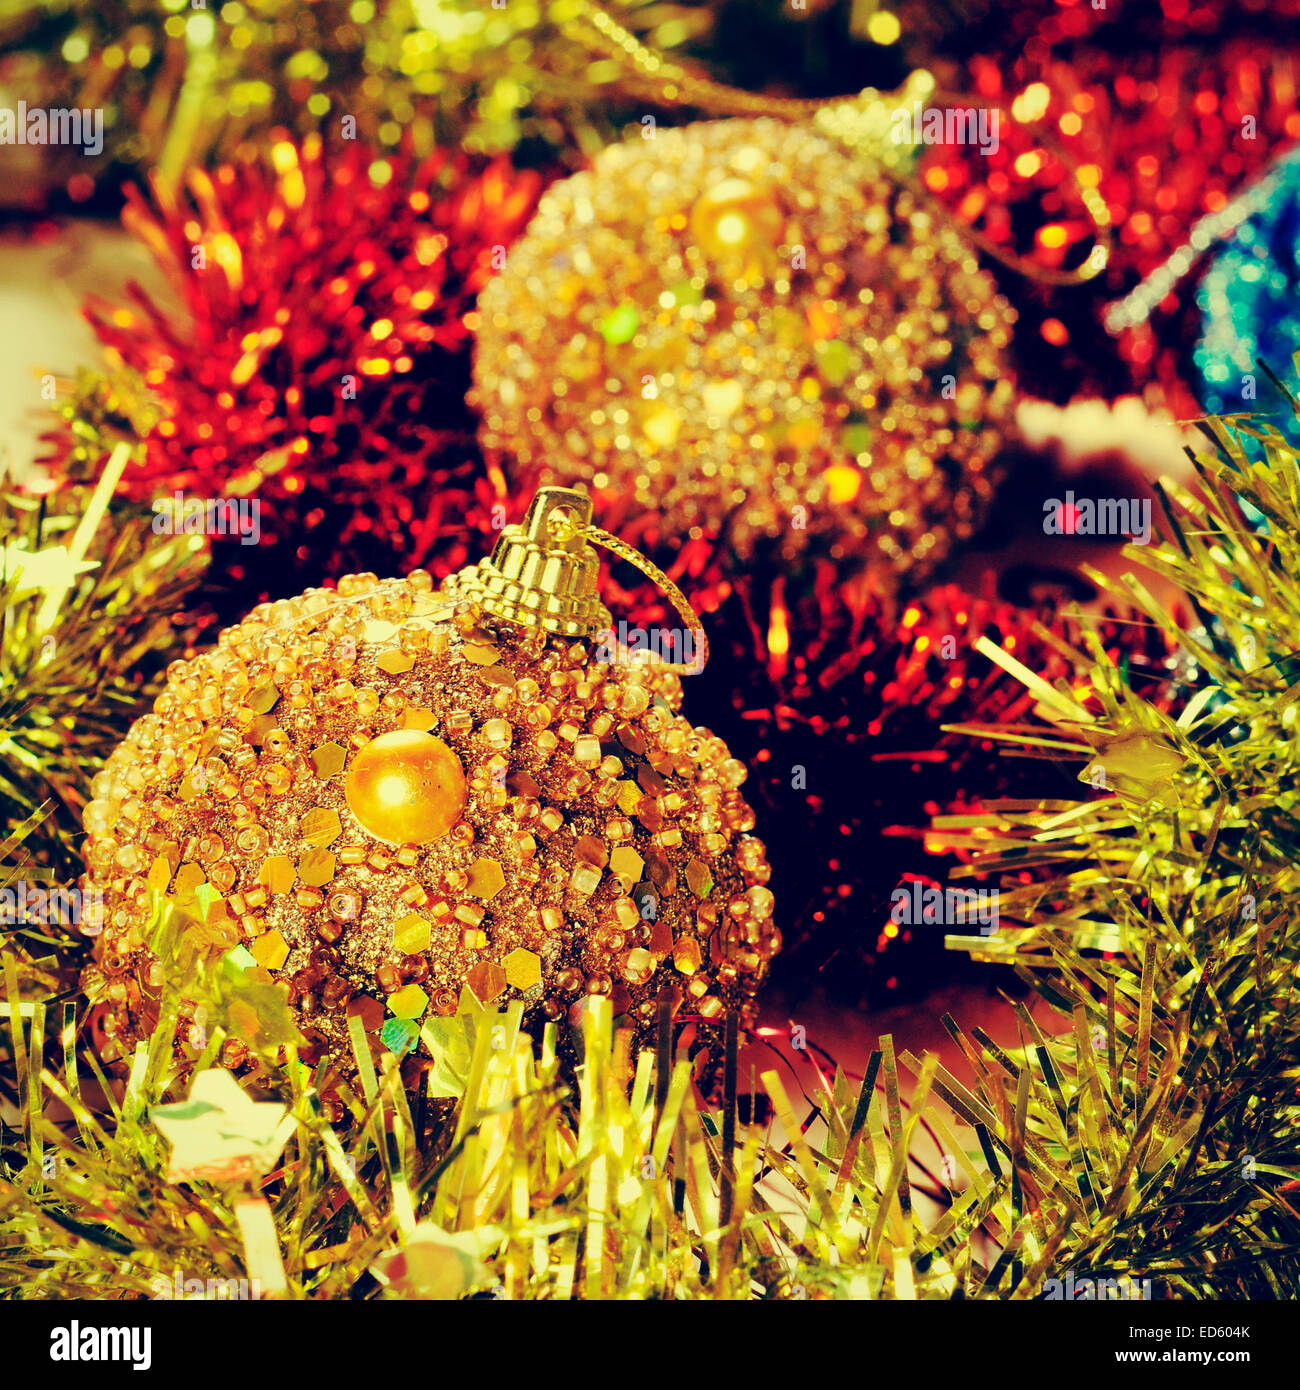 picture of some christmas balls and tinsel of different colors, with a retro effect - Stock Image